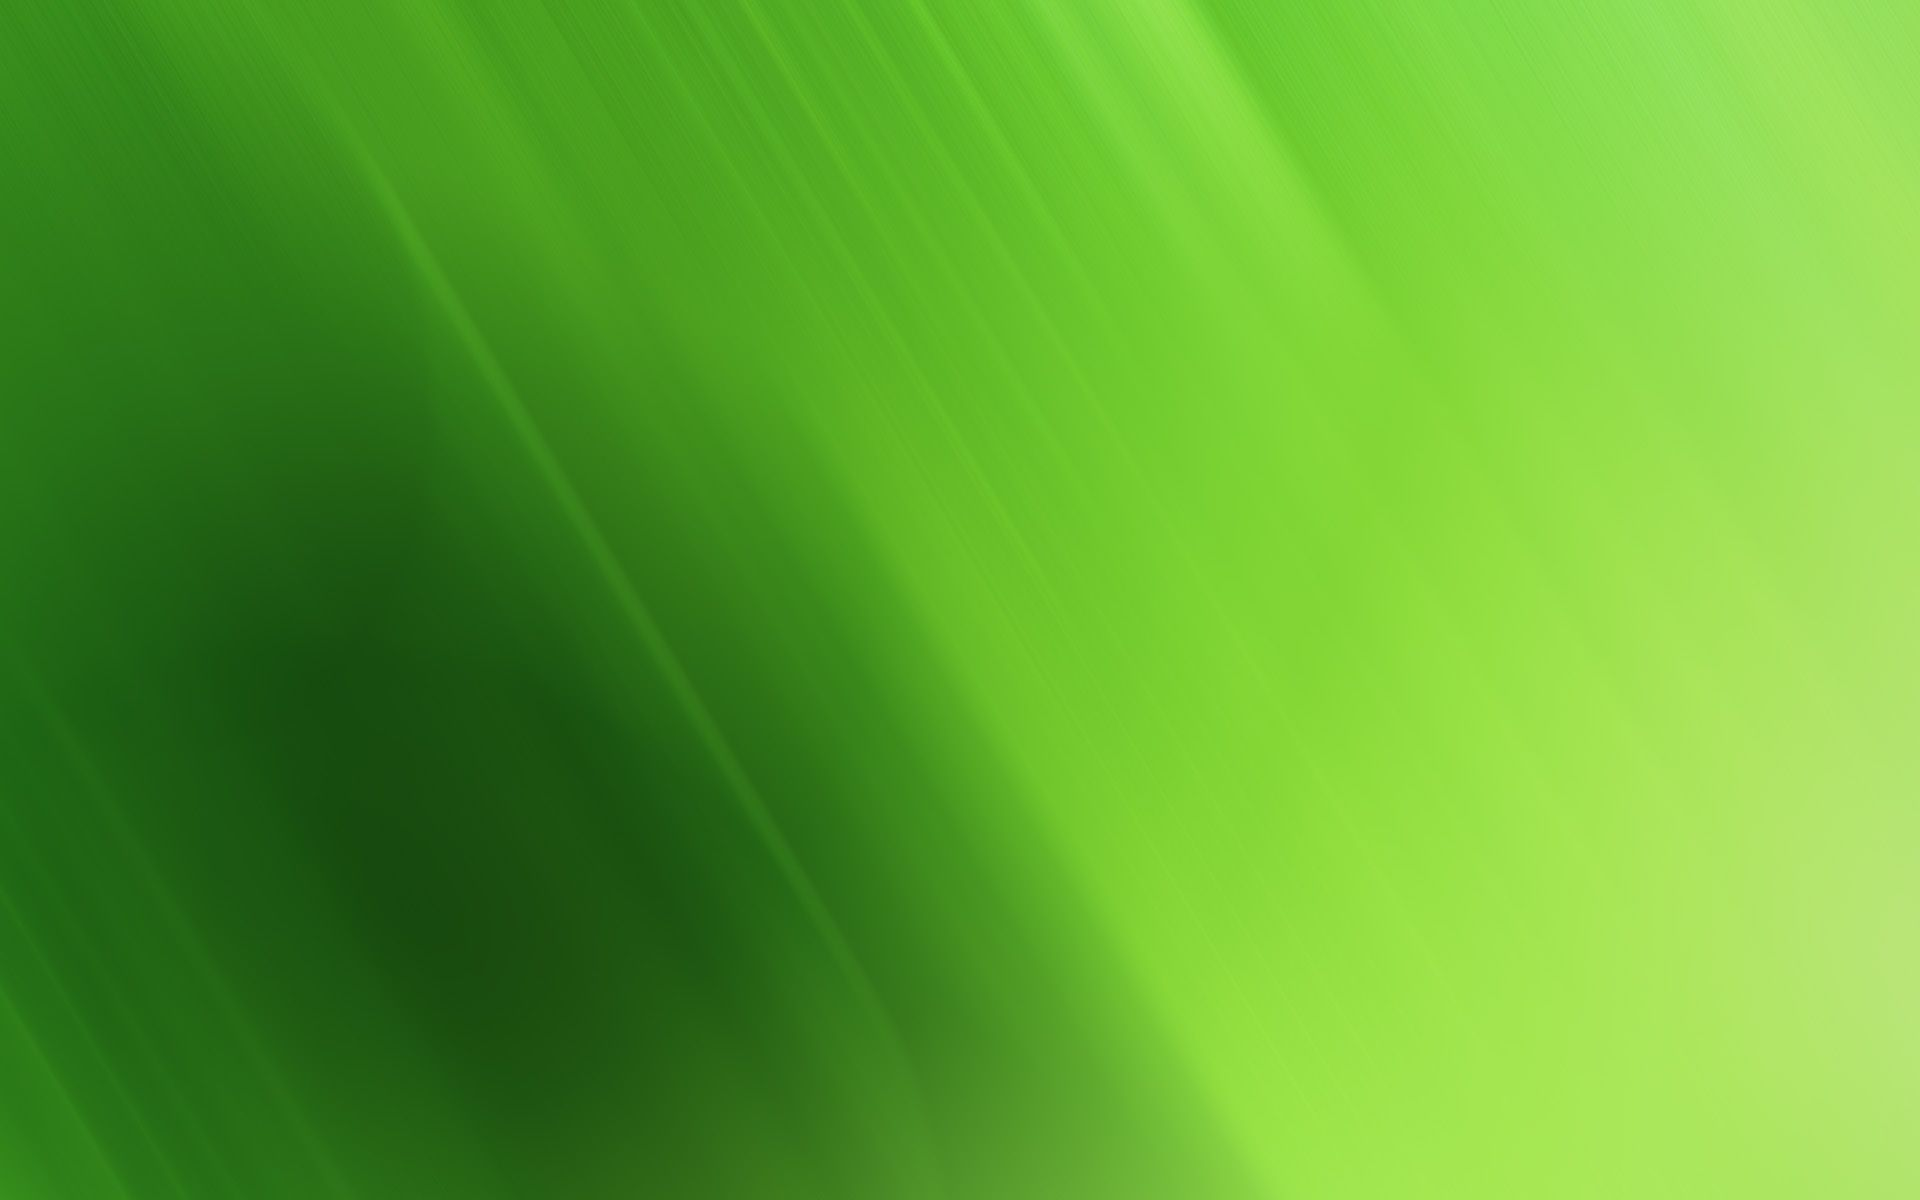 clean_green_abstract-1920x1200.jpg